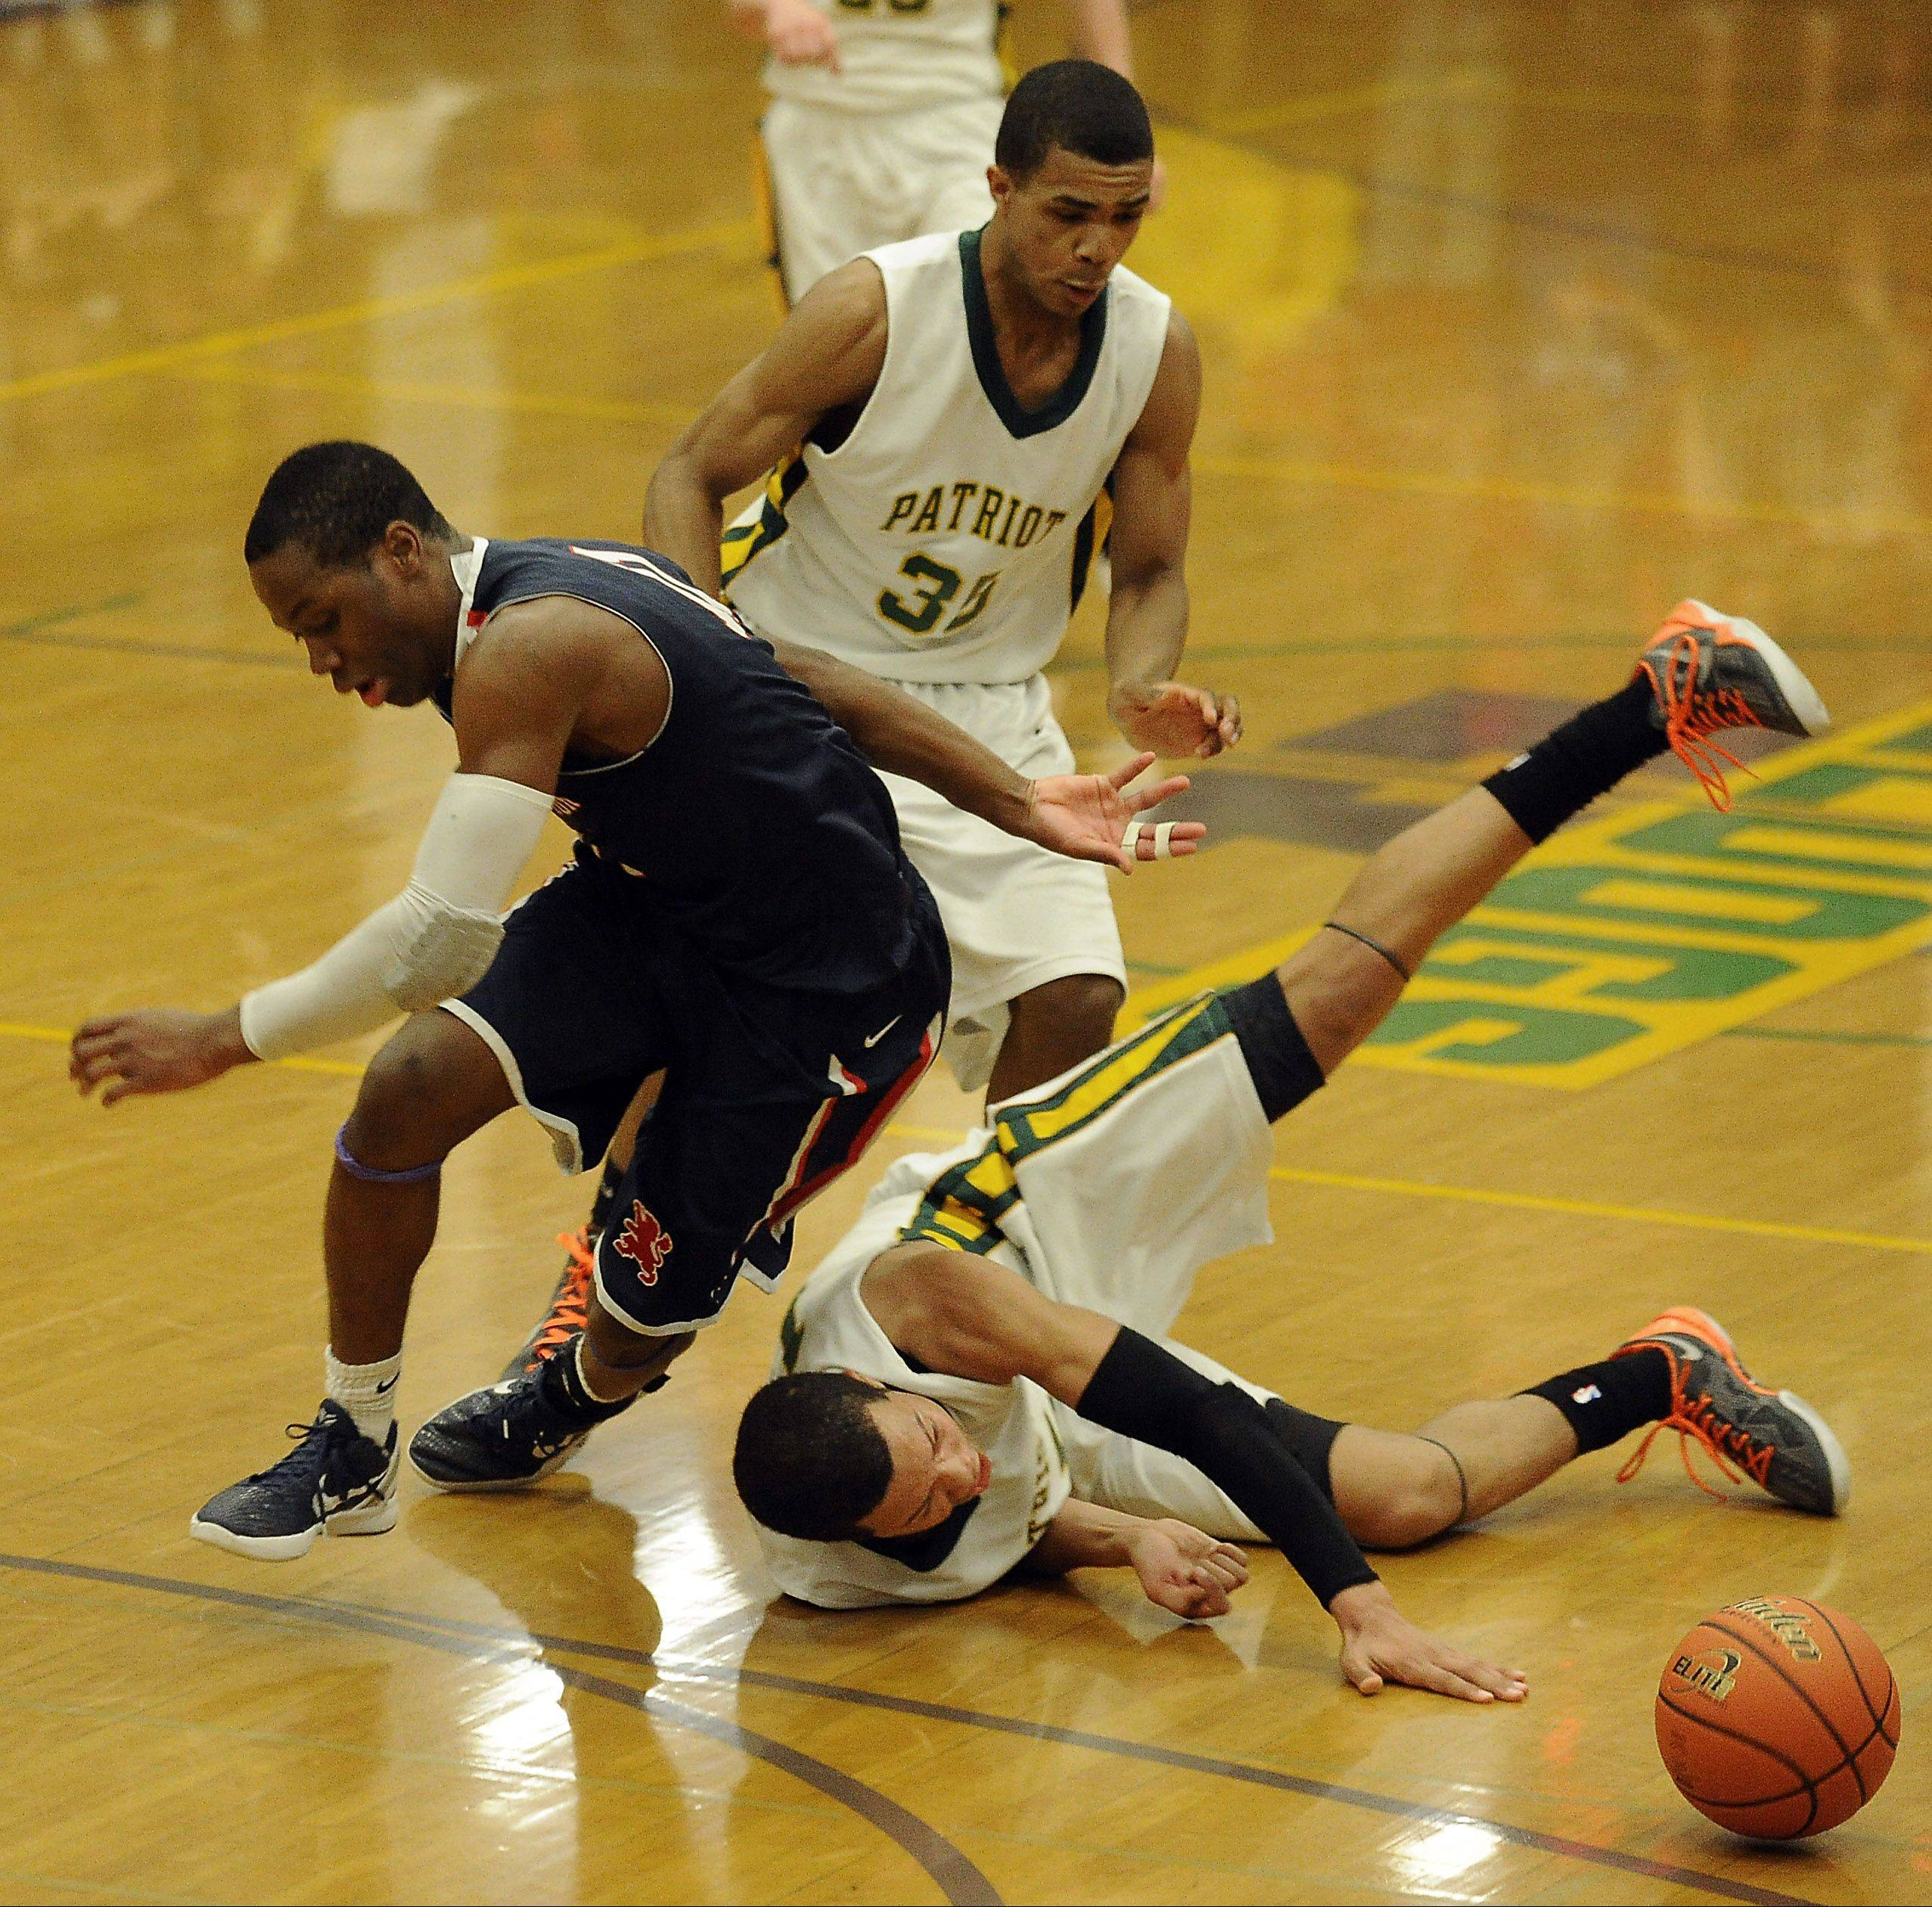 Stevenson's Jalen Brunson and teammate Connor Cashaw collide with St. Viator's Mayo Arogundade in the fourth quarter of Class 4A sectional championship play Friday in Waukegan.